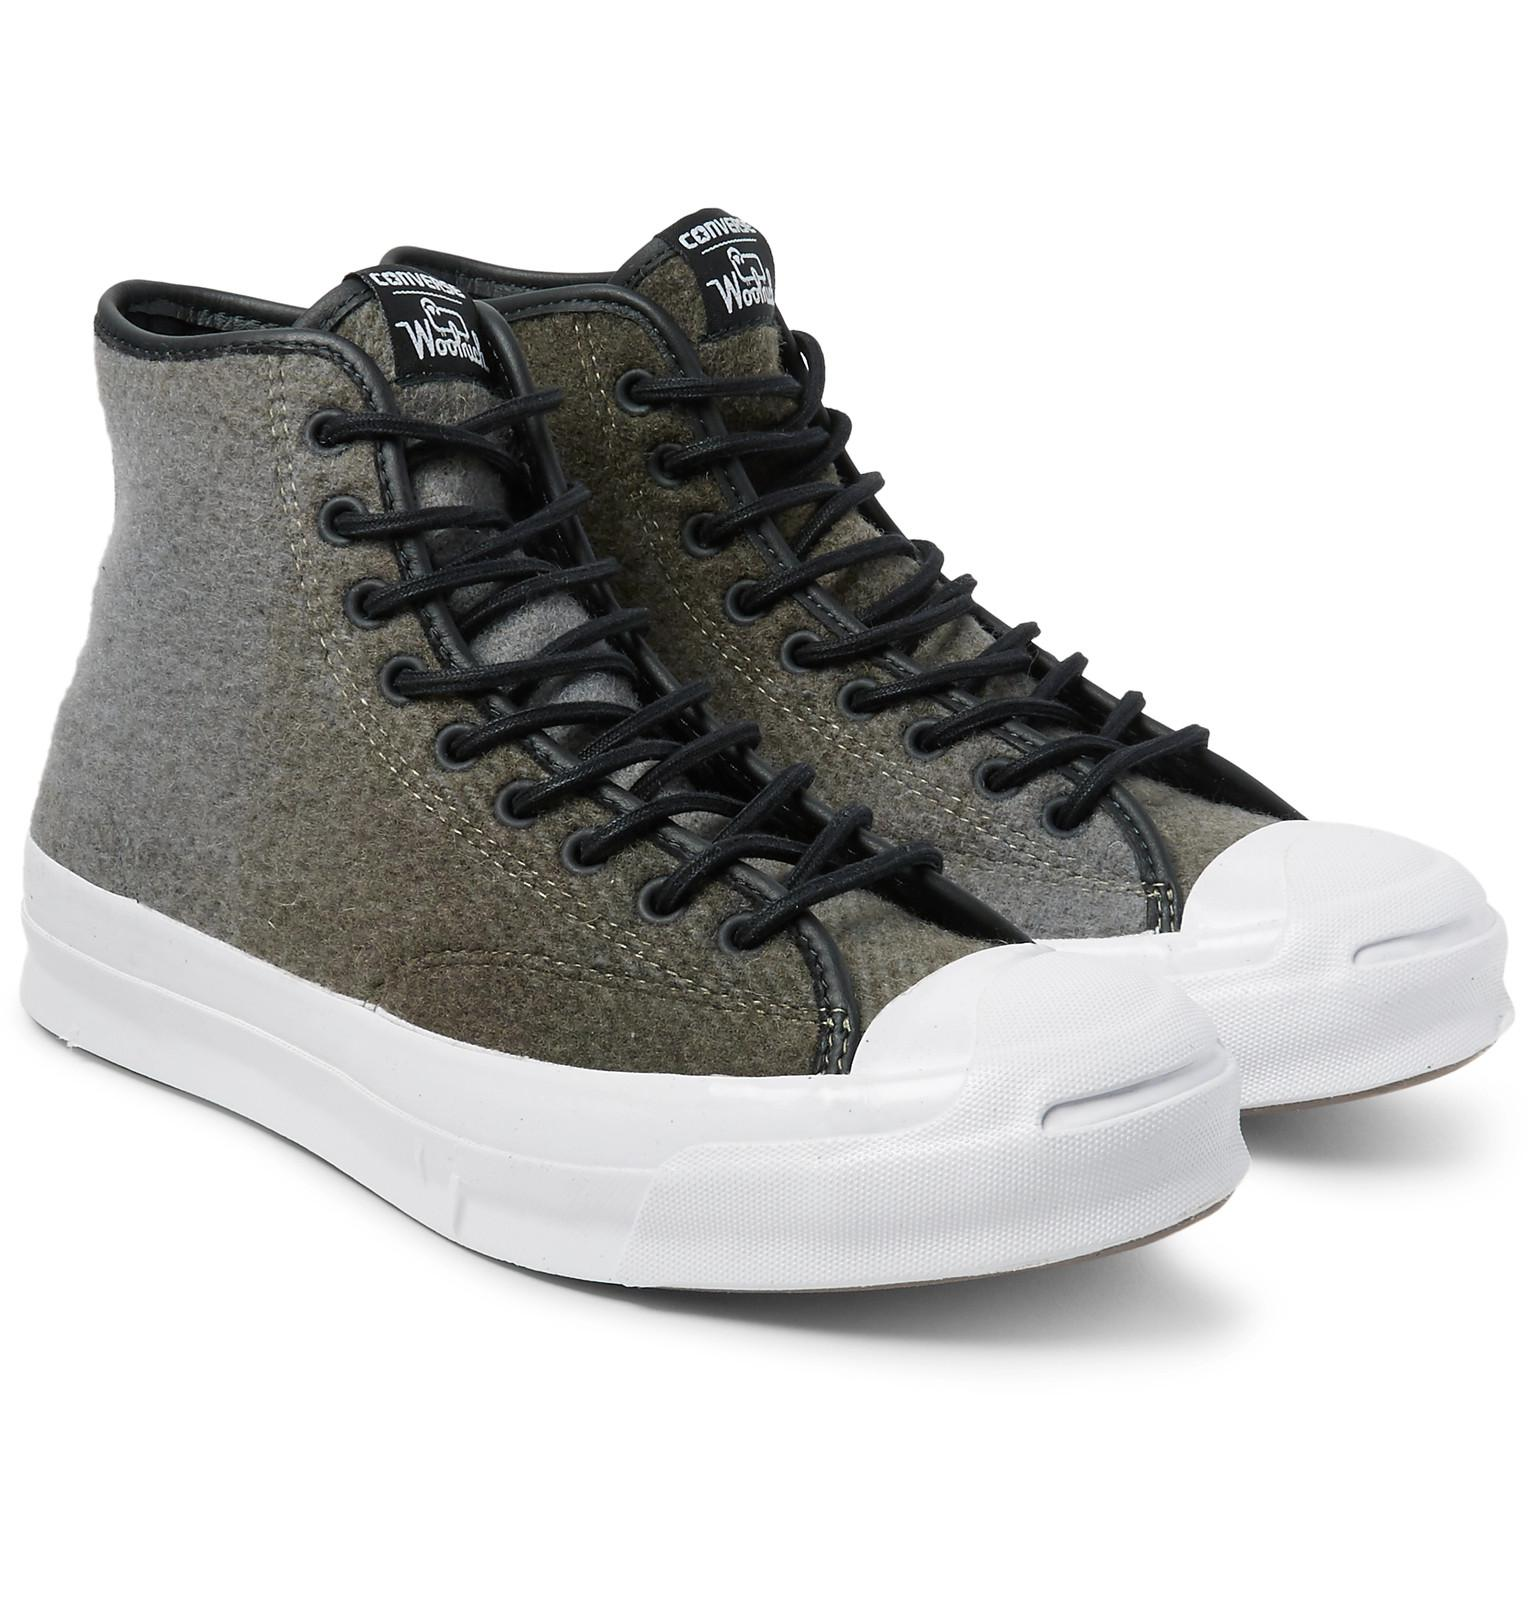 82b070b5c739 Lyst - Converse + Woolrich Jack Purcell Signature Wool High-top ...